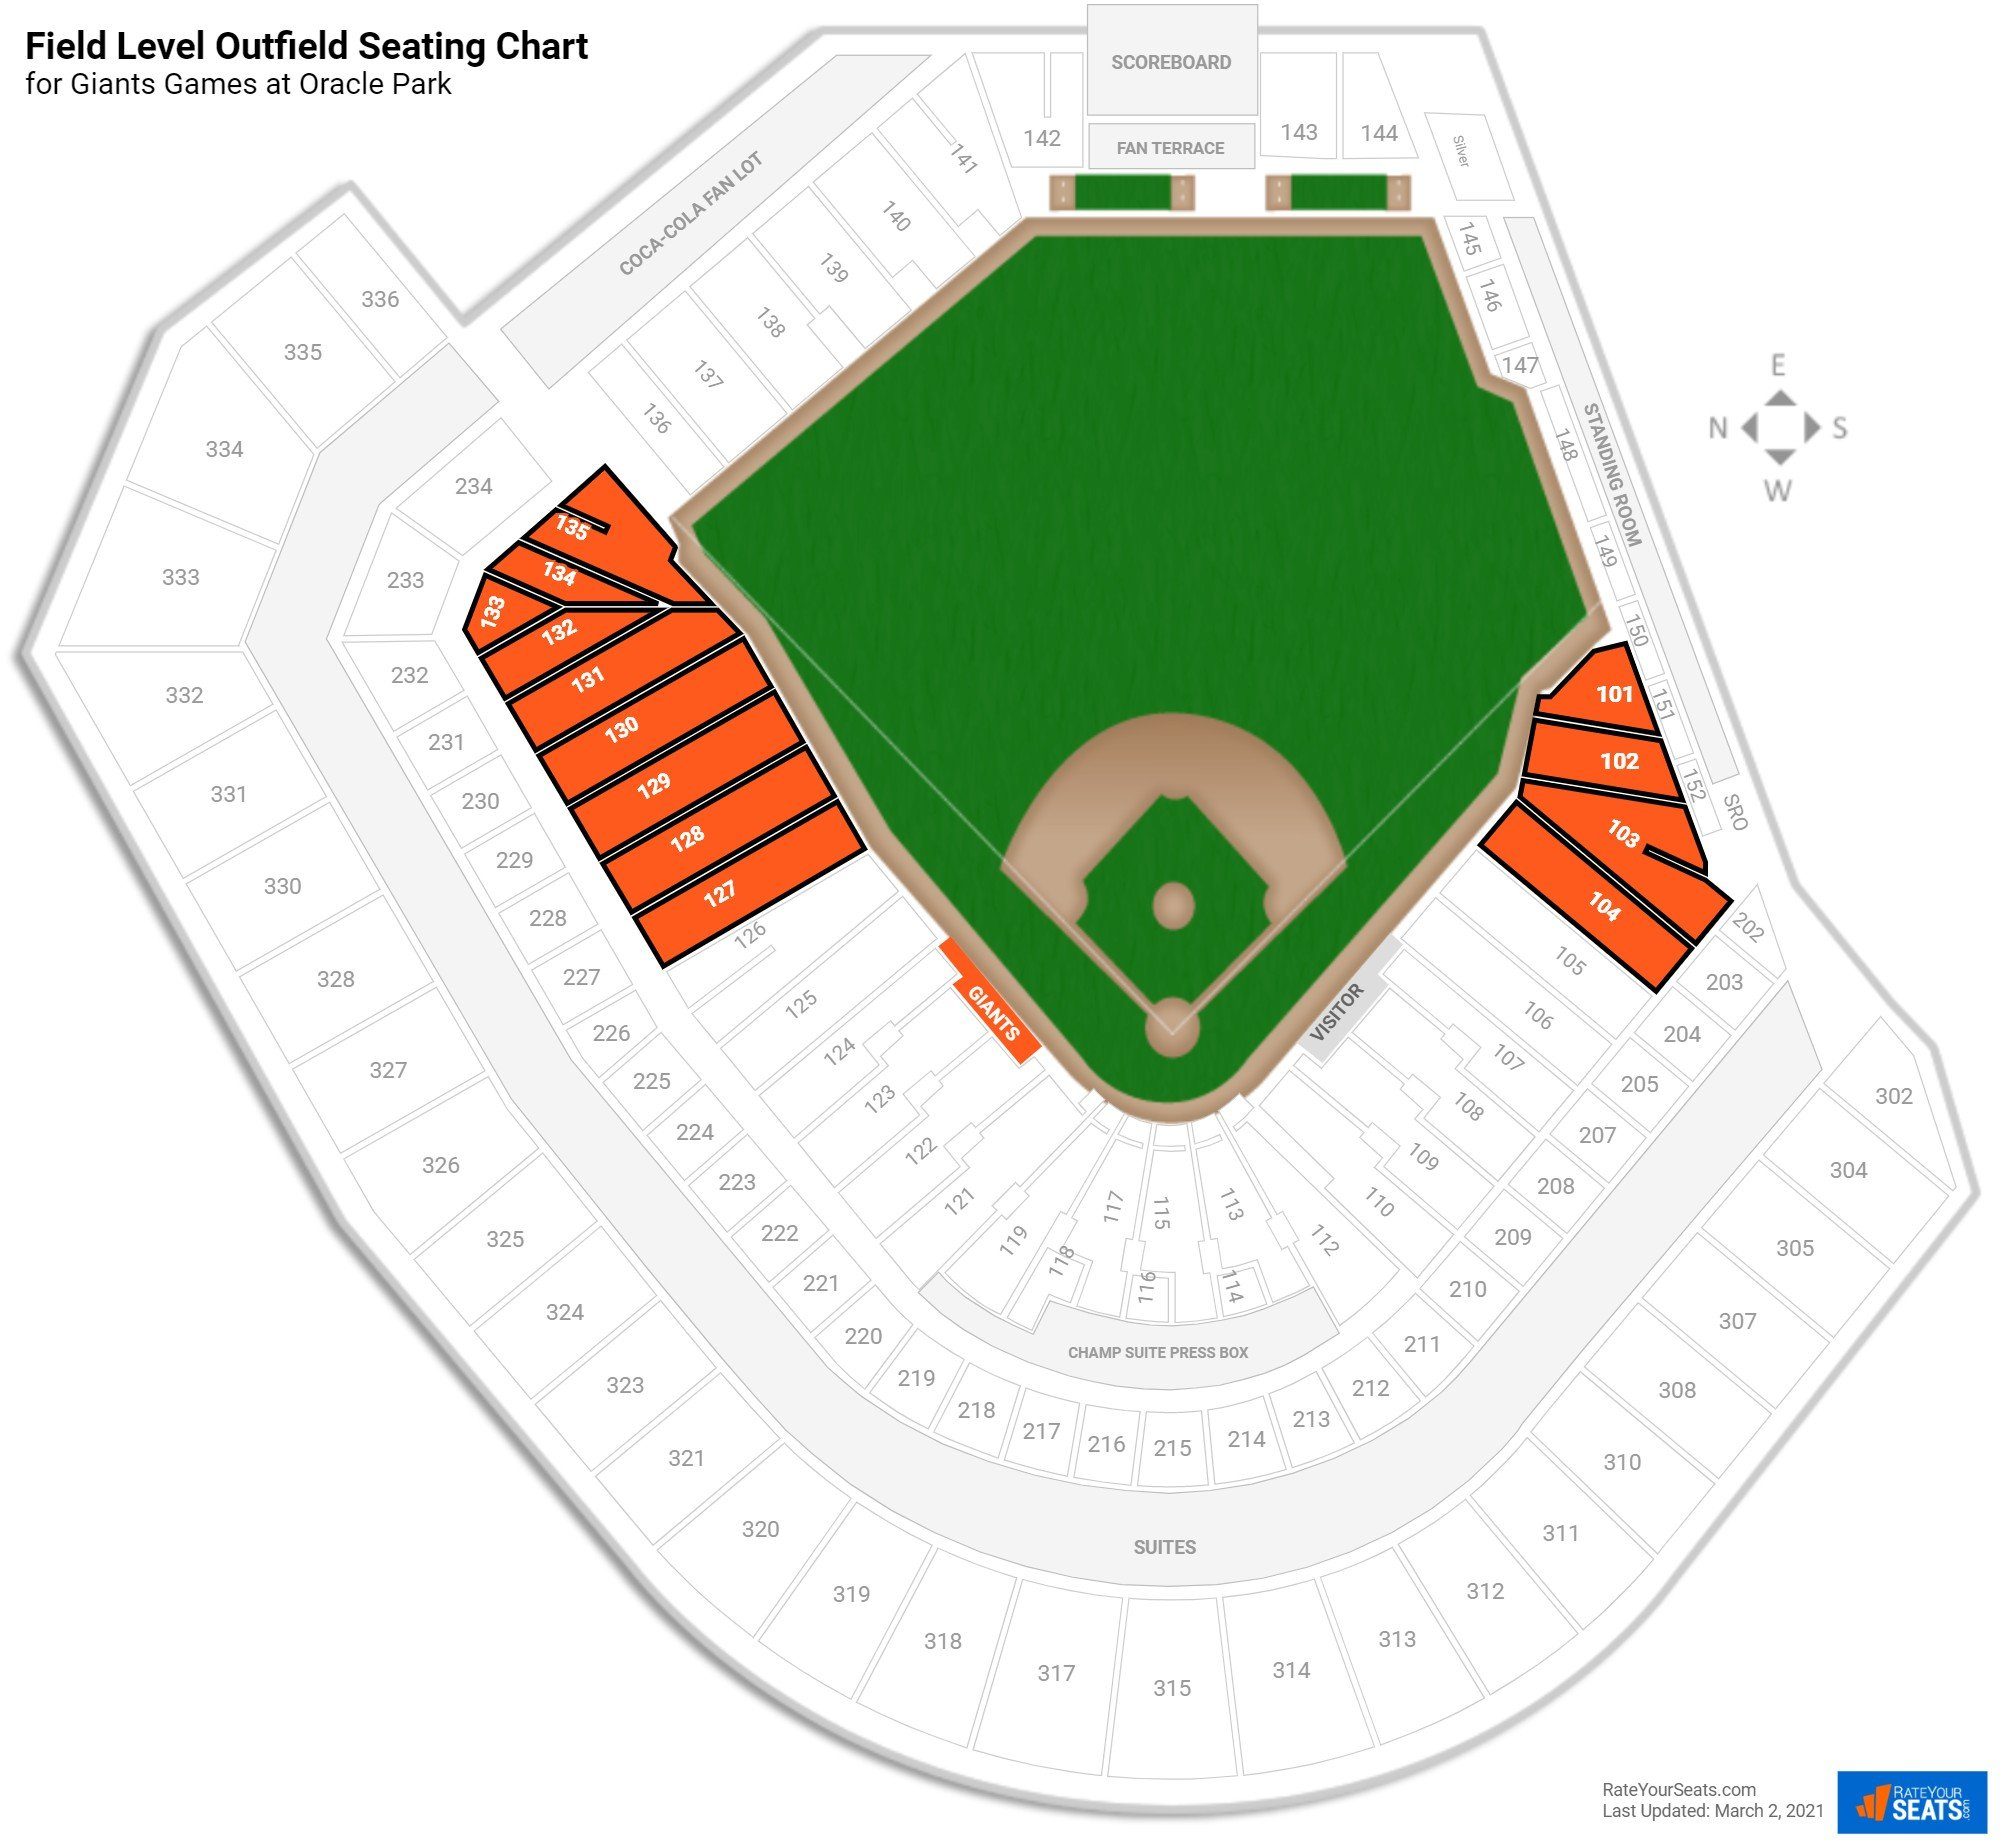 AT&T Park Field Level Outfield seating chart